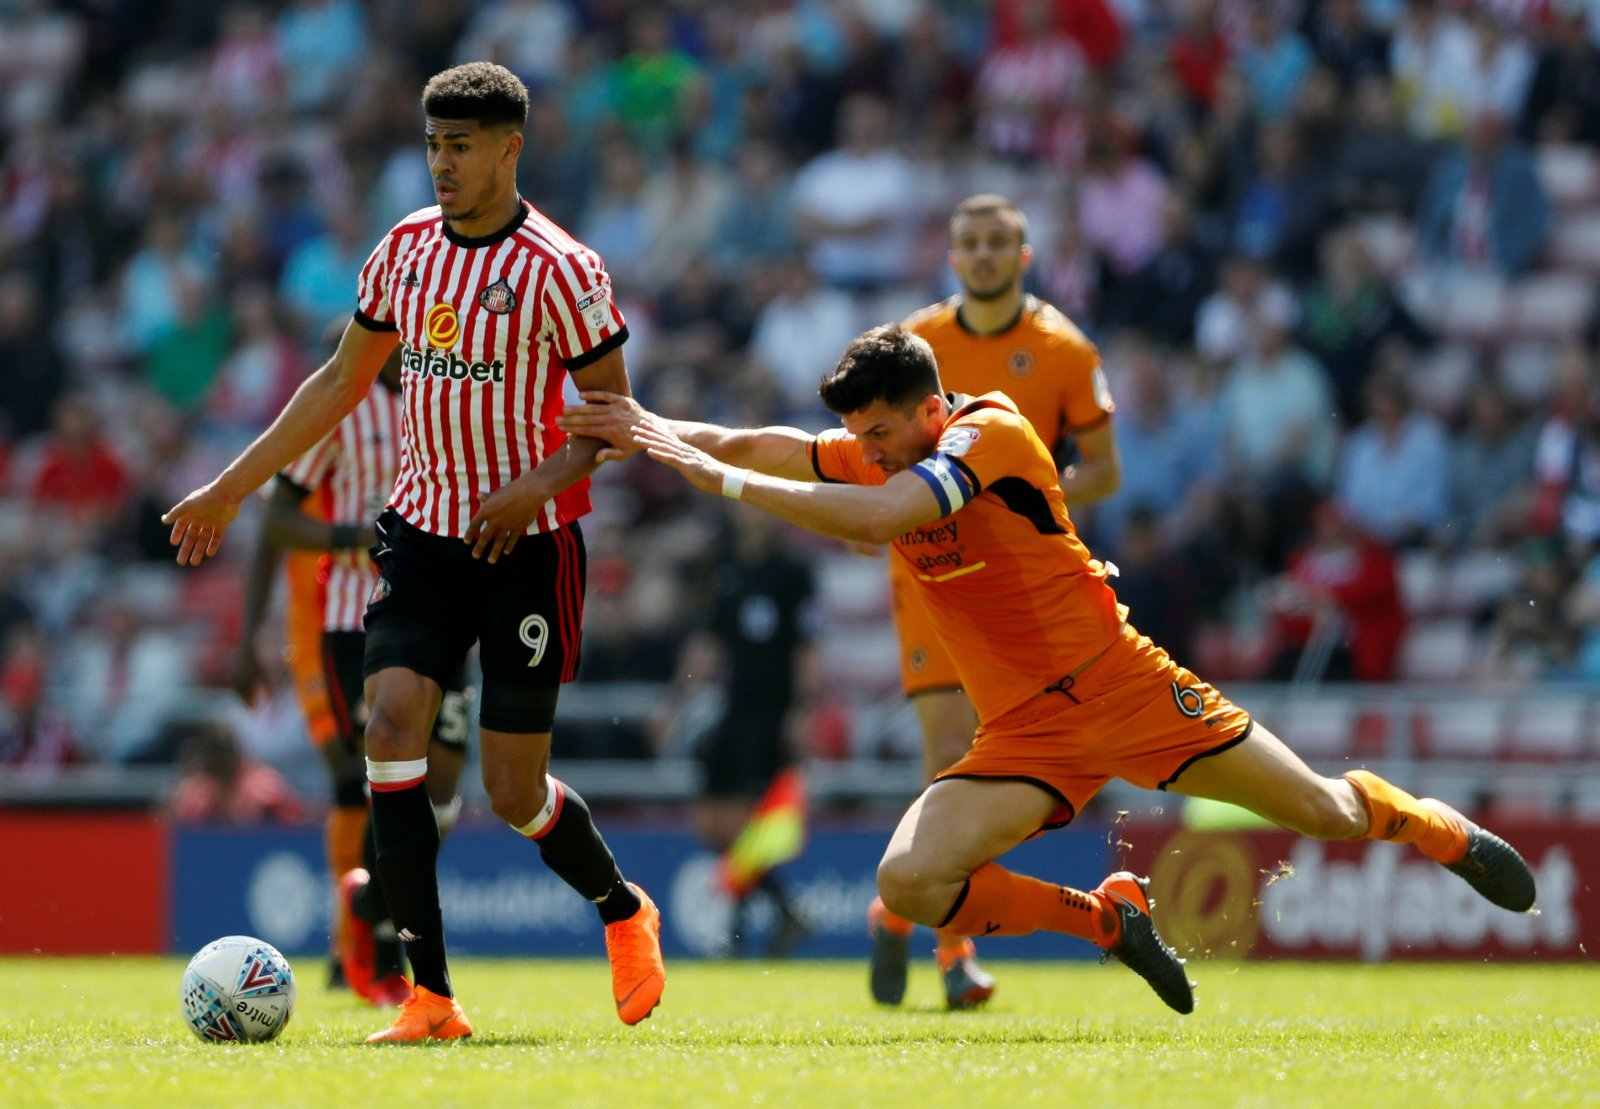 Linked-away Ashley Fletcher could finally get his career going again with return to Sunderland